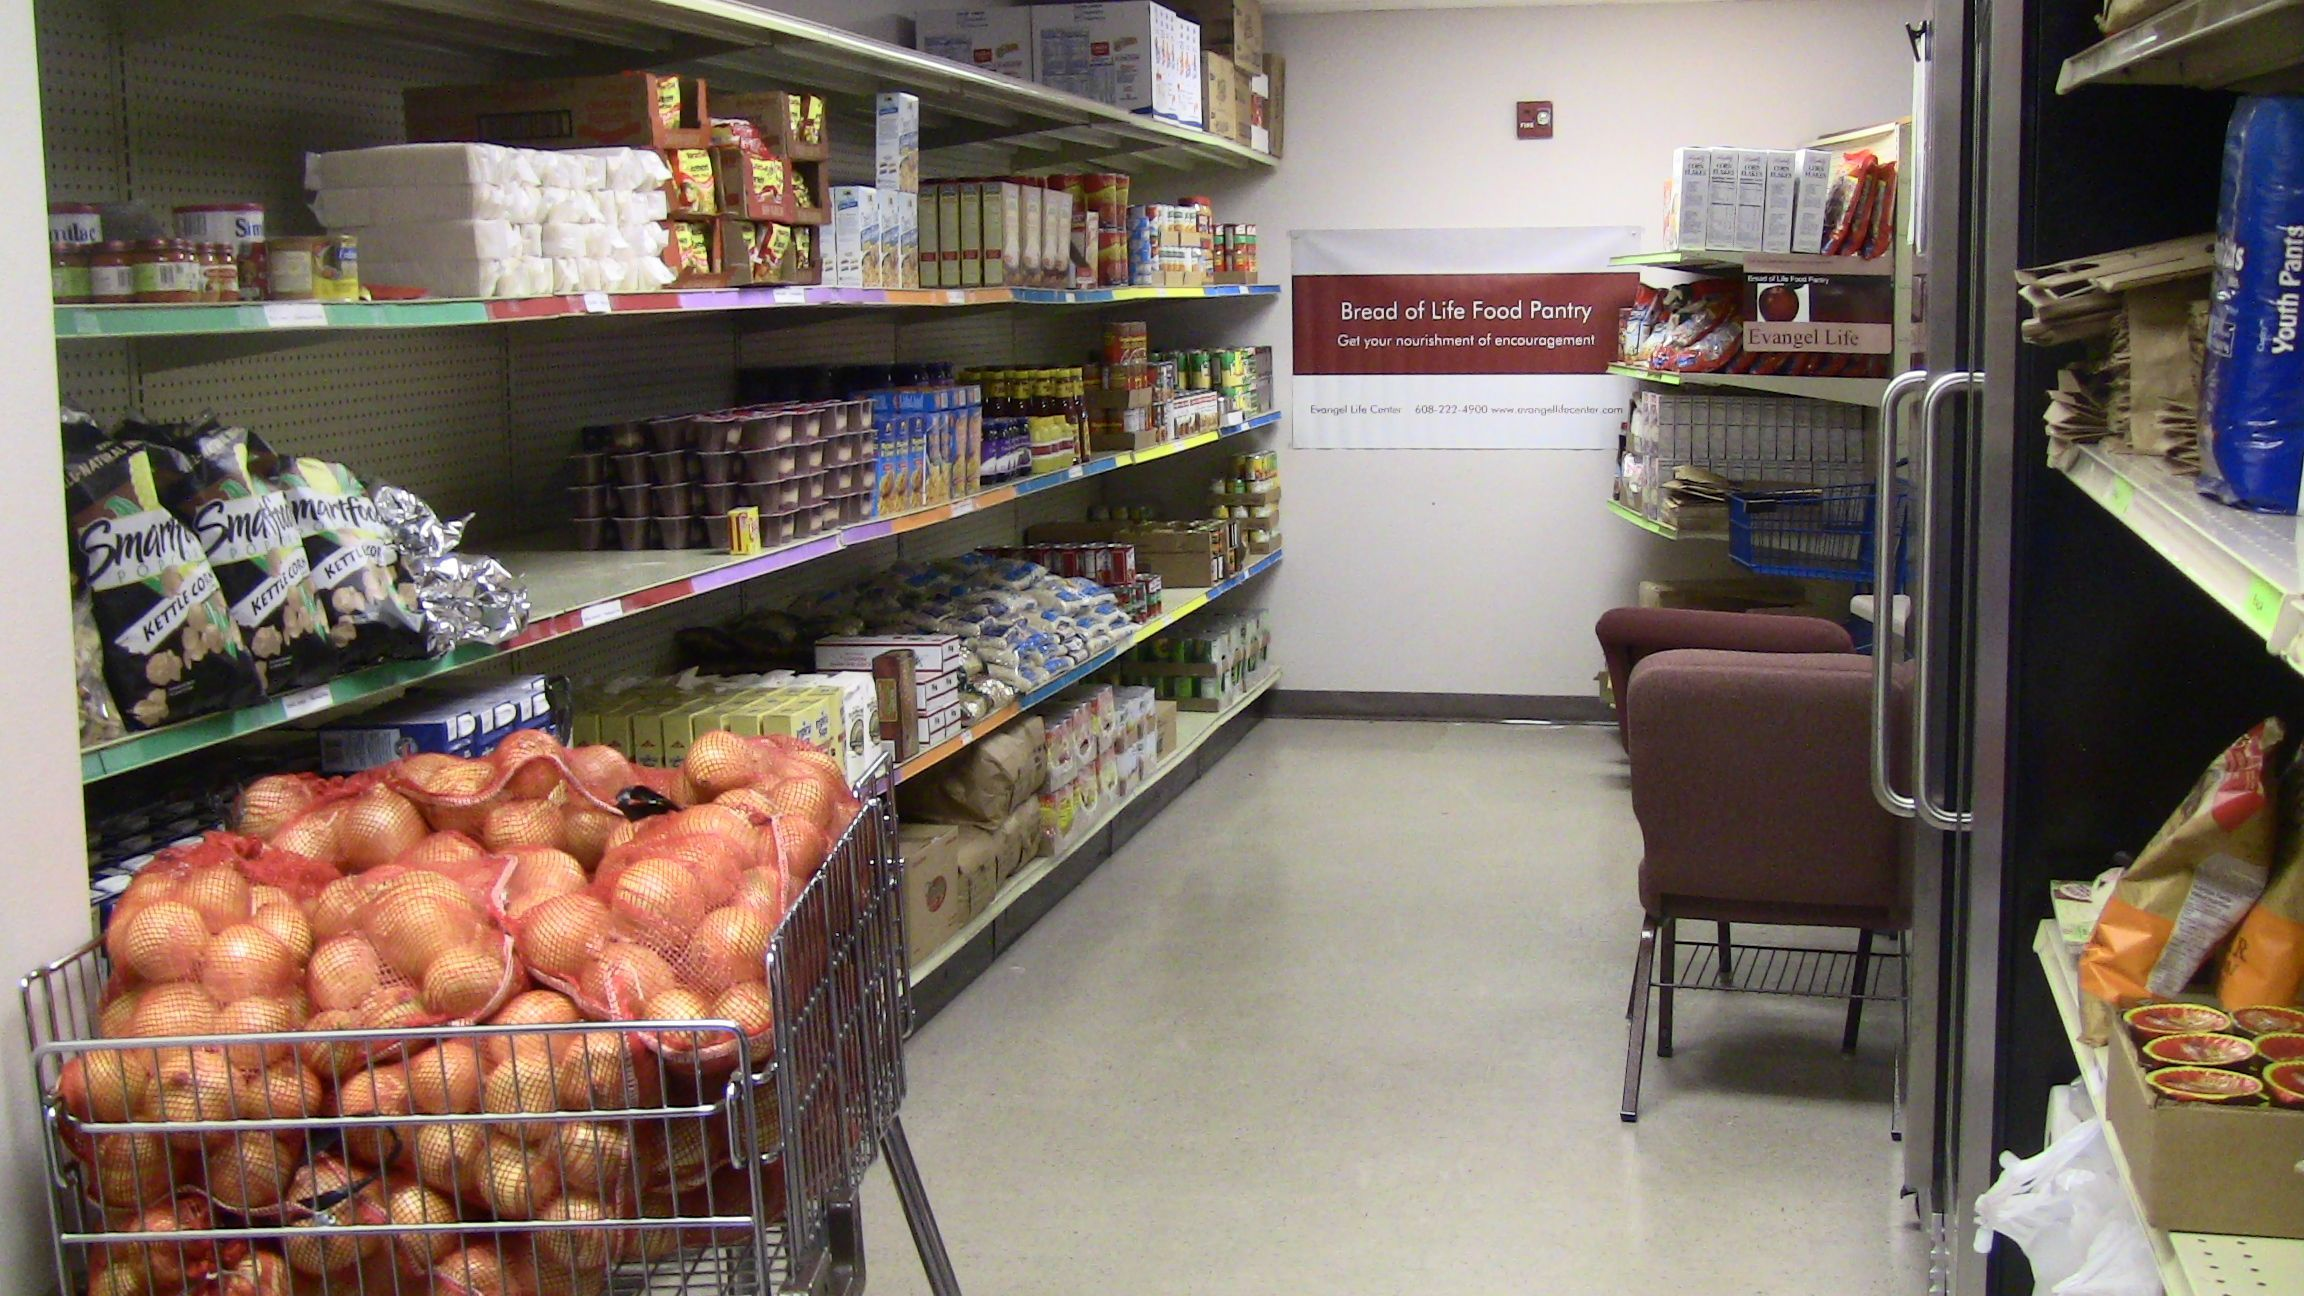 Evangel Life Center Bread of Life Food Pantry